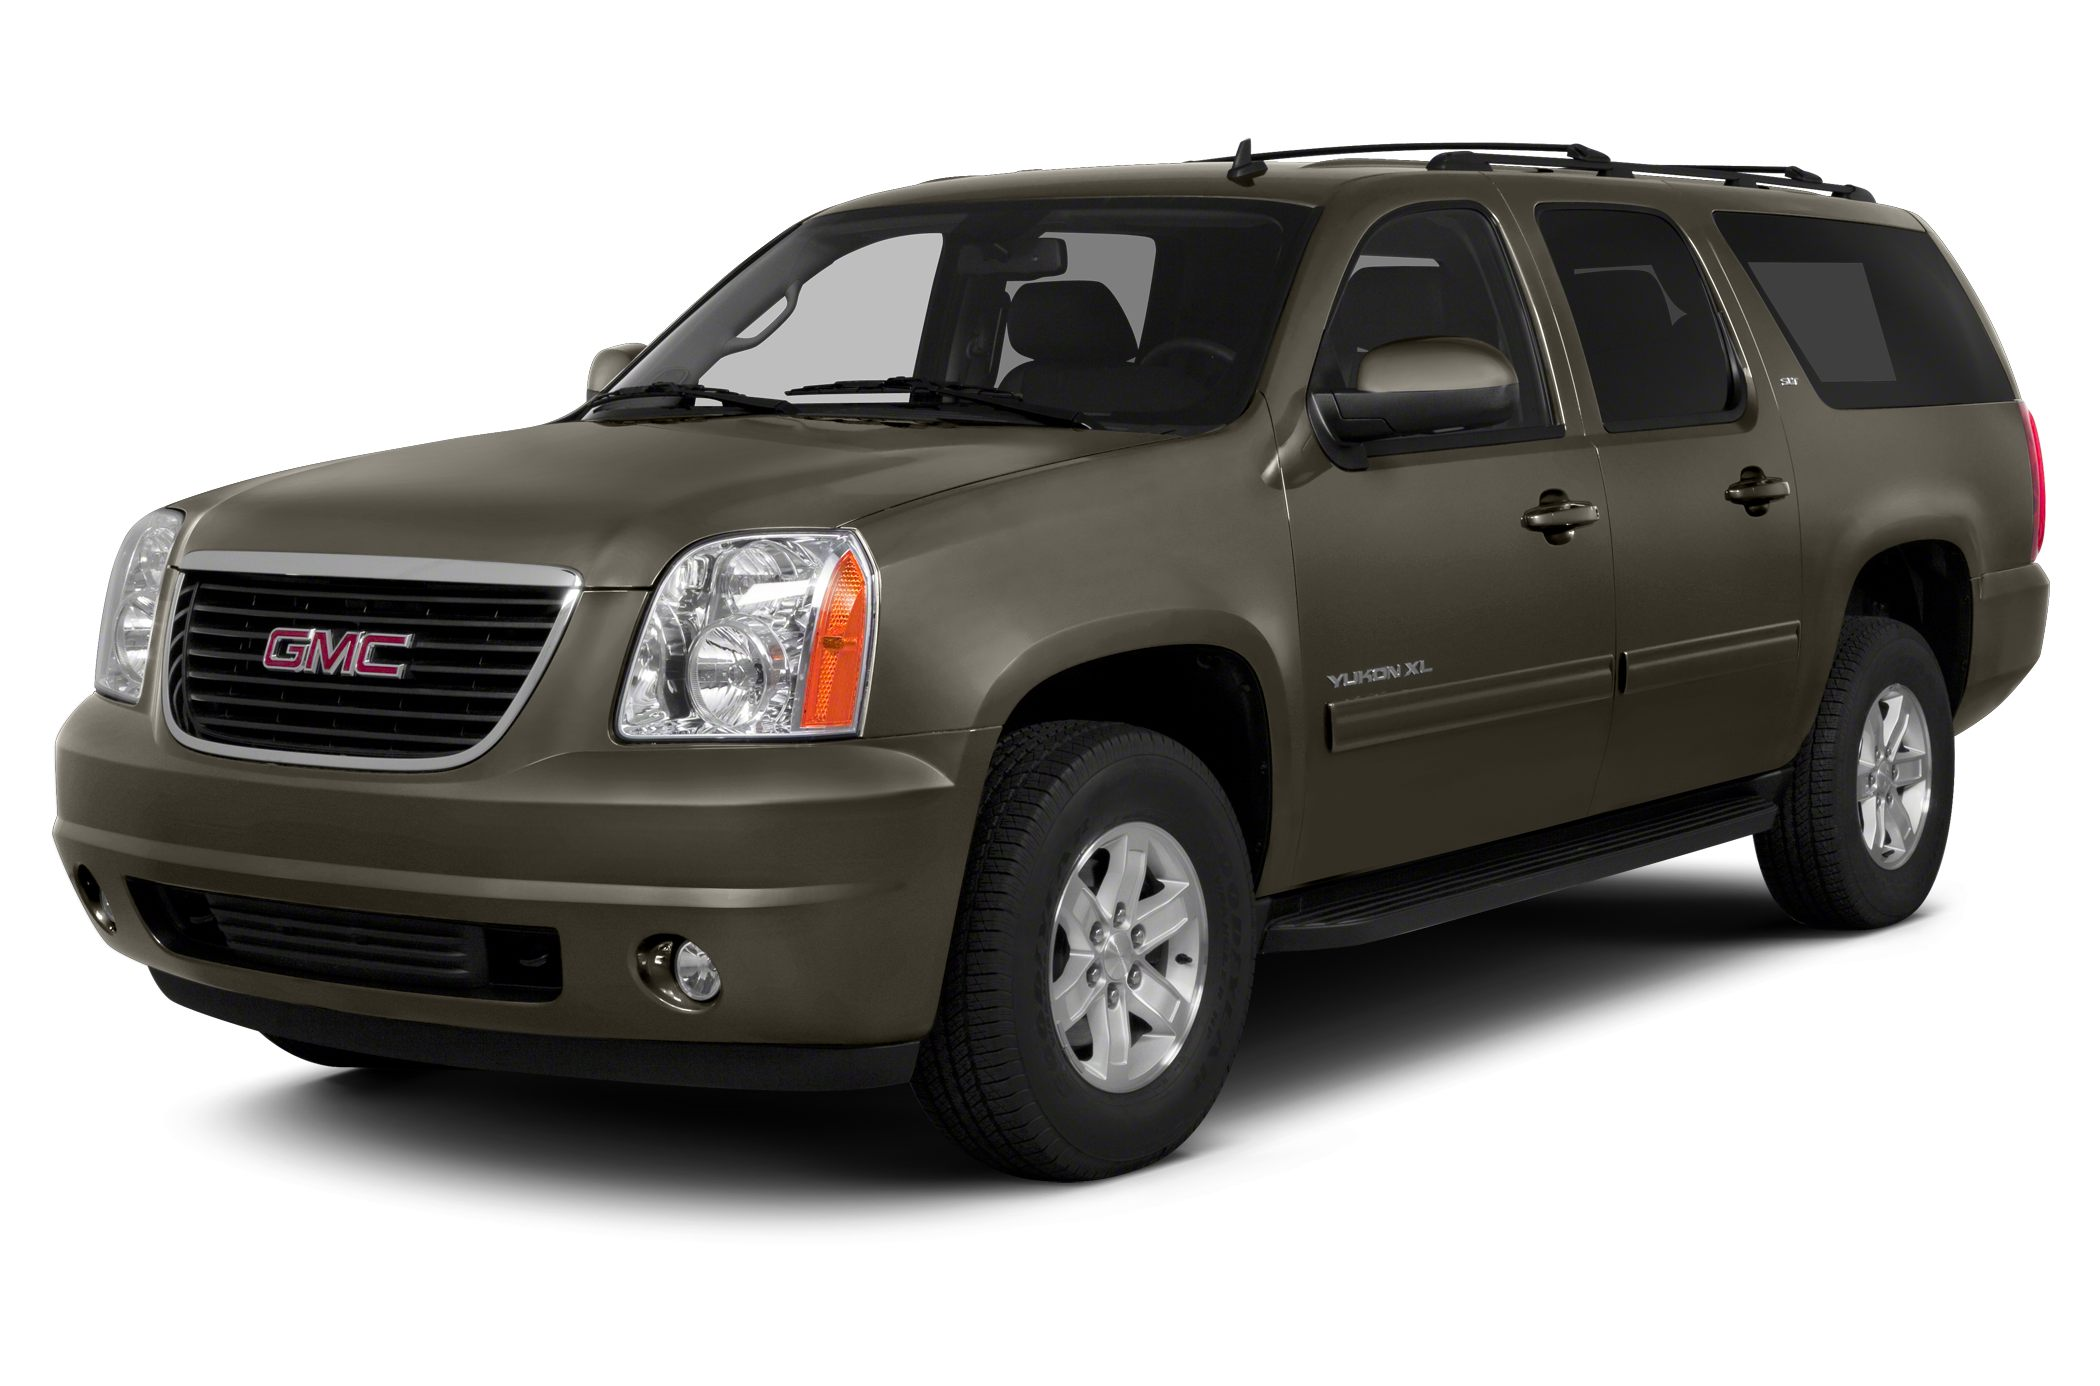 2014 GMC Yukon XL 1500 SLT SUV for sale in Midland for $42,300 with 27,742 miles